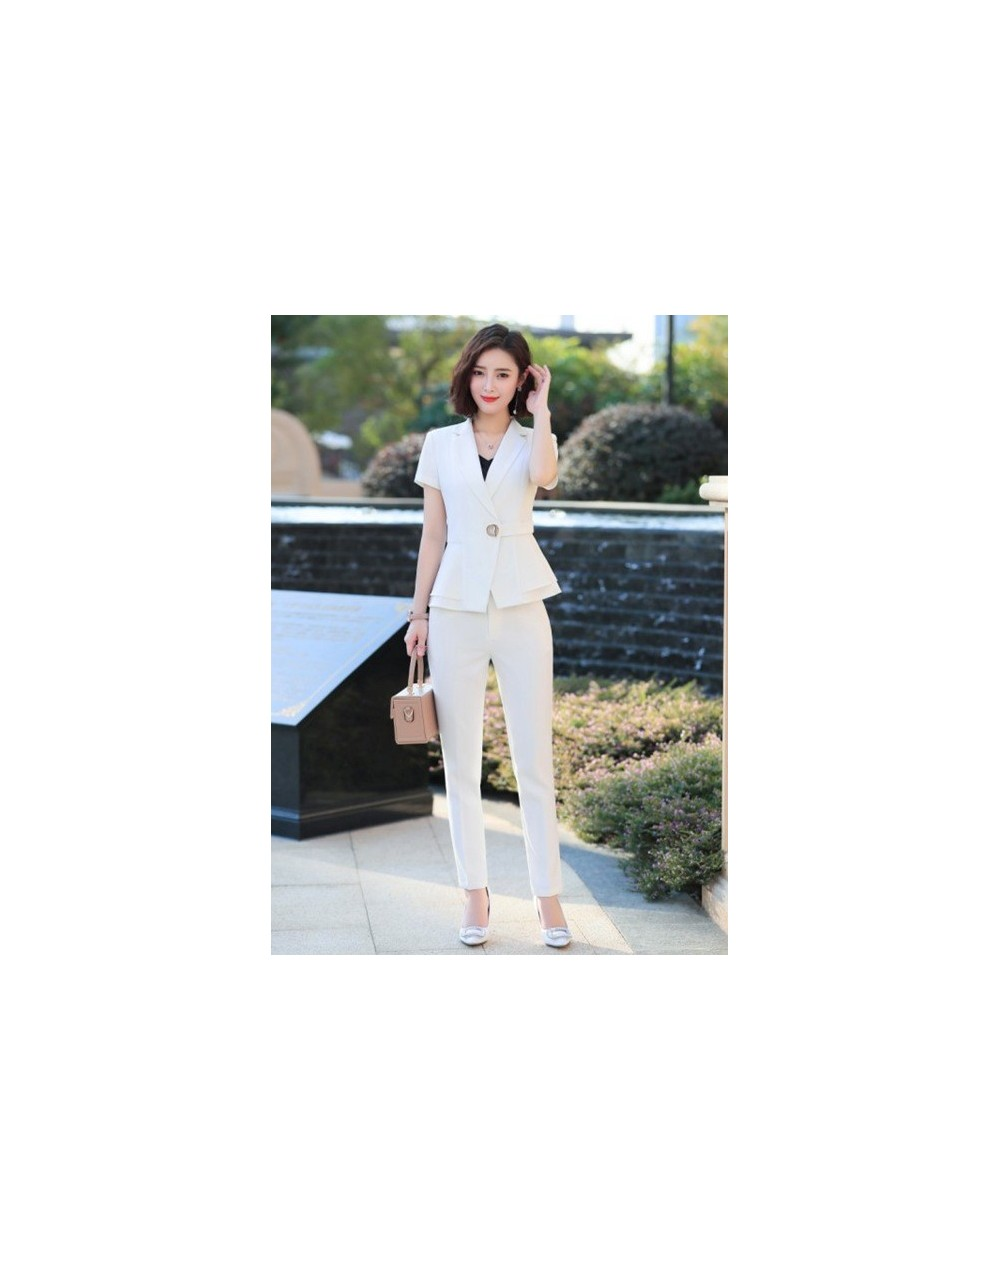 Fashion women New summer pants suits business temperament short sleeve slim blazer and pants offce lady plus size work wear ...